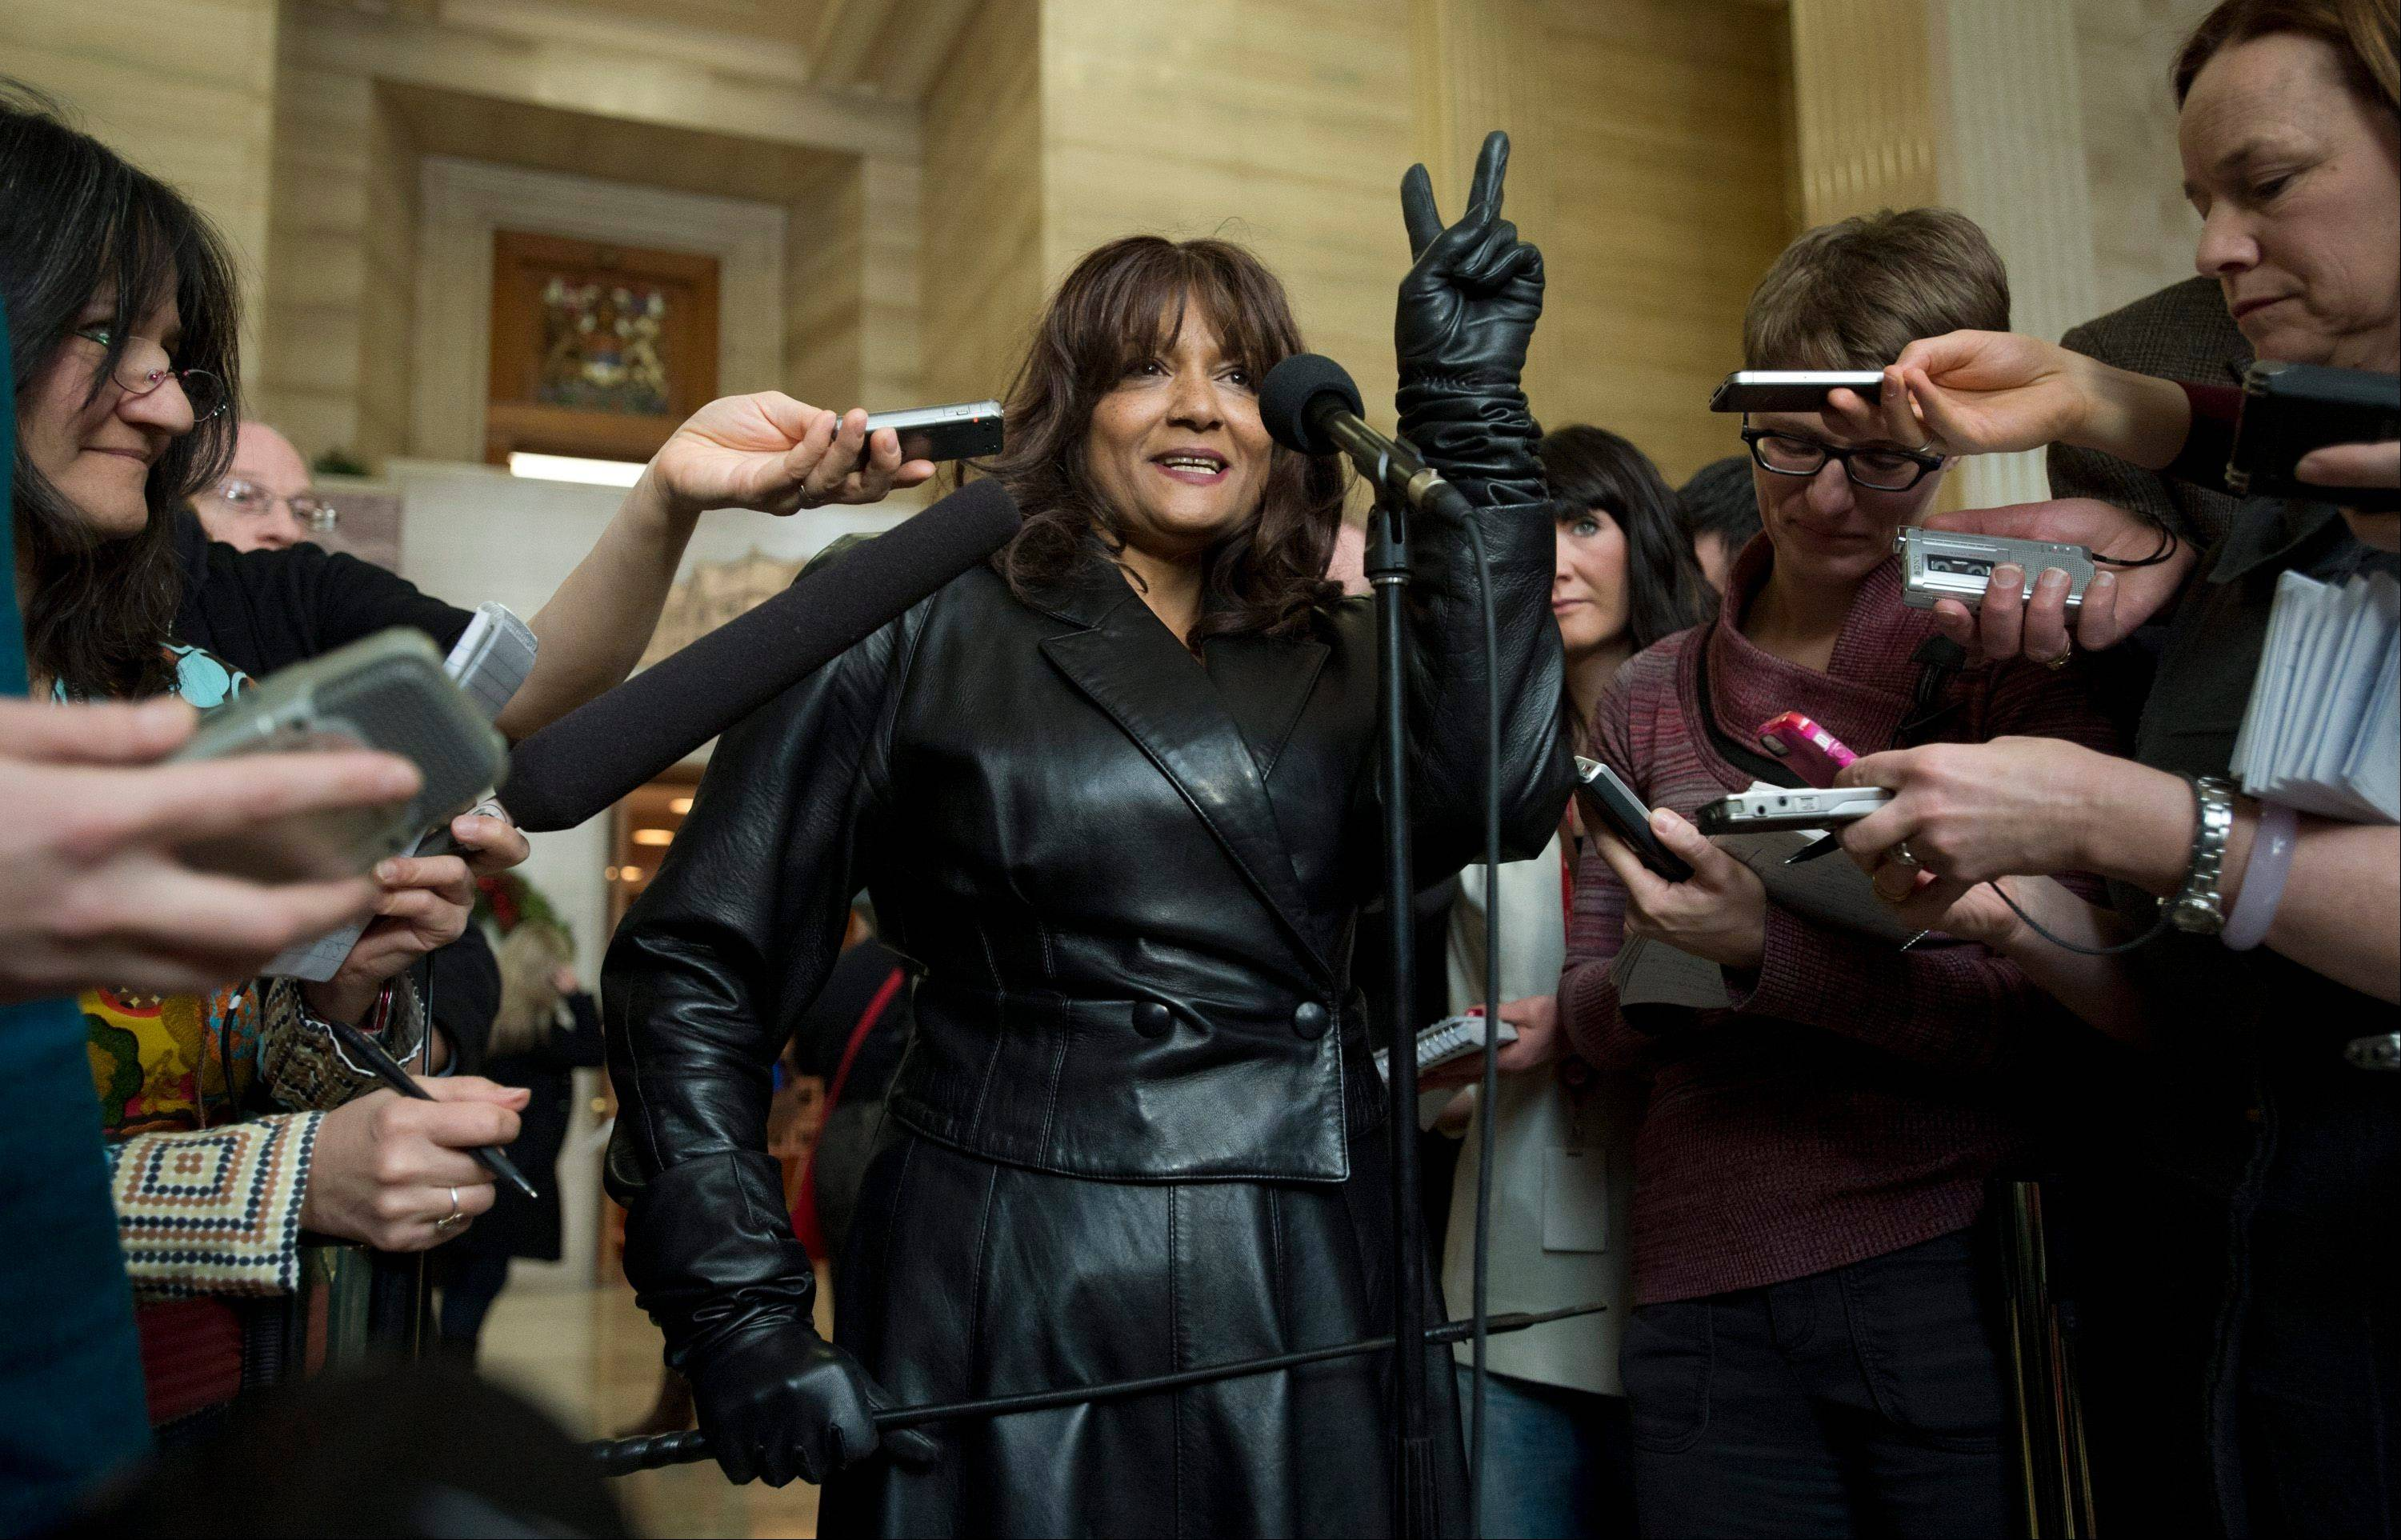 Terri-Jean Bedford gives a victory sigh as she talks to reporters at the Supreme Court of Canada in Ottawa Friday morning, Dec. 20, 2013 after learning Canada's highest court struck down the country's prostitution laws in their entirety in a unanimous 9-0 ruling. The retired dominatrix is one of the three principles in the Supreme Court case.